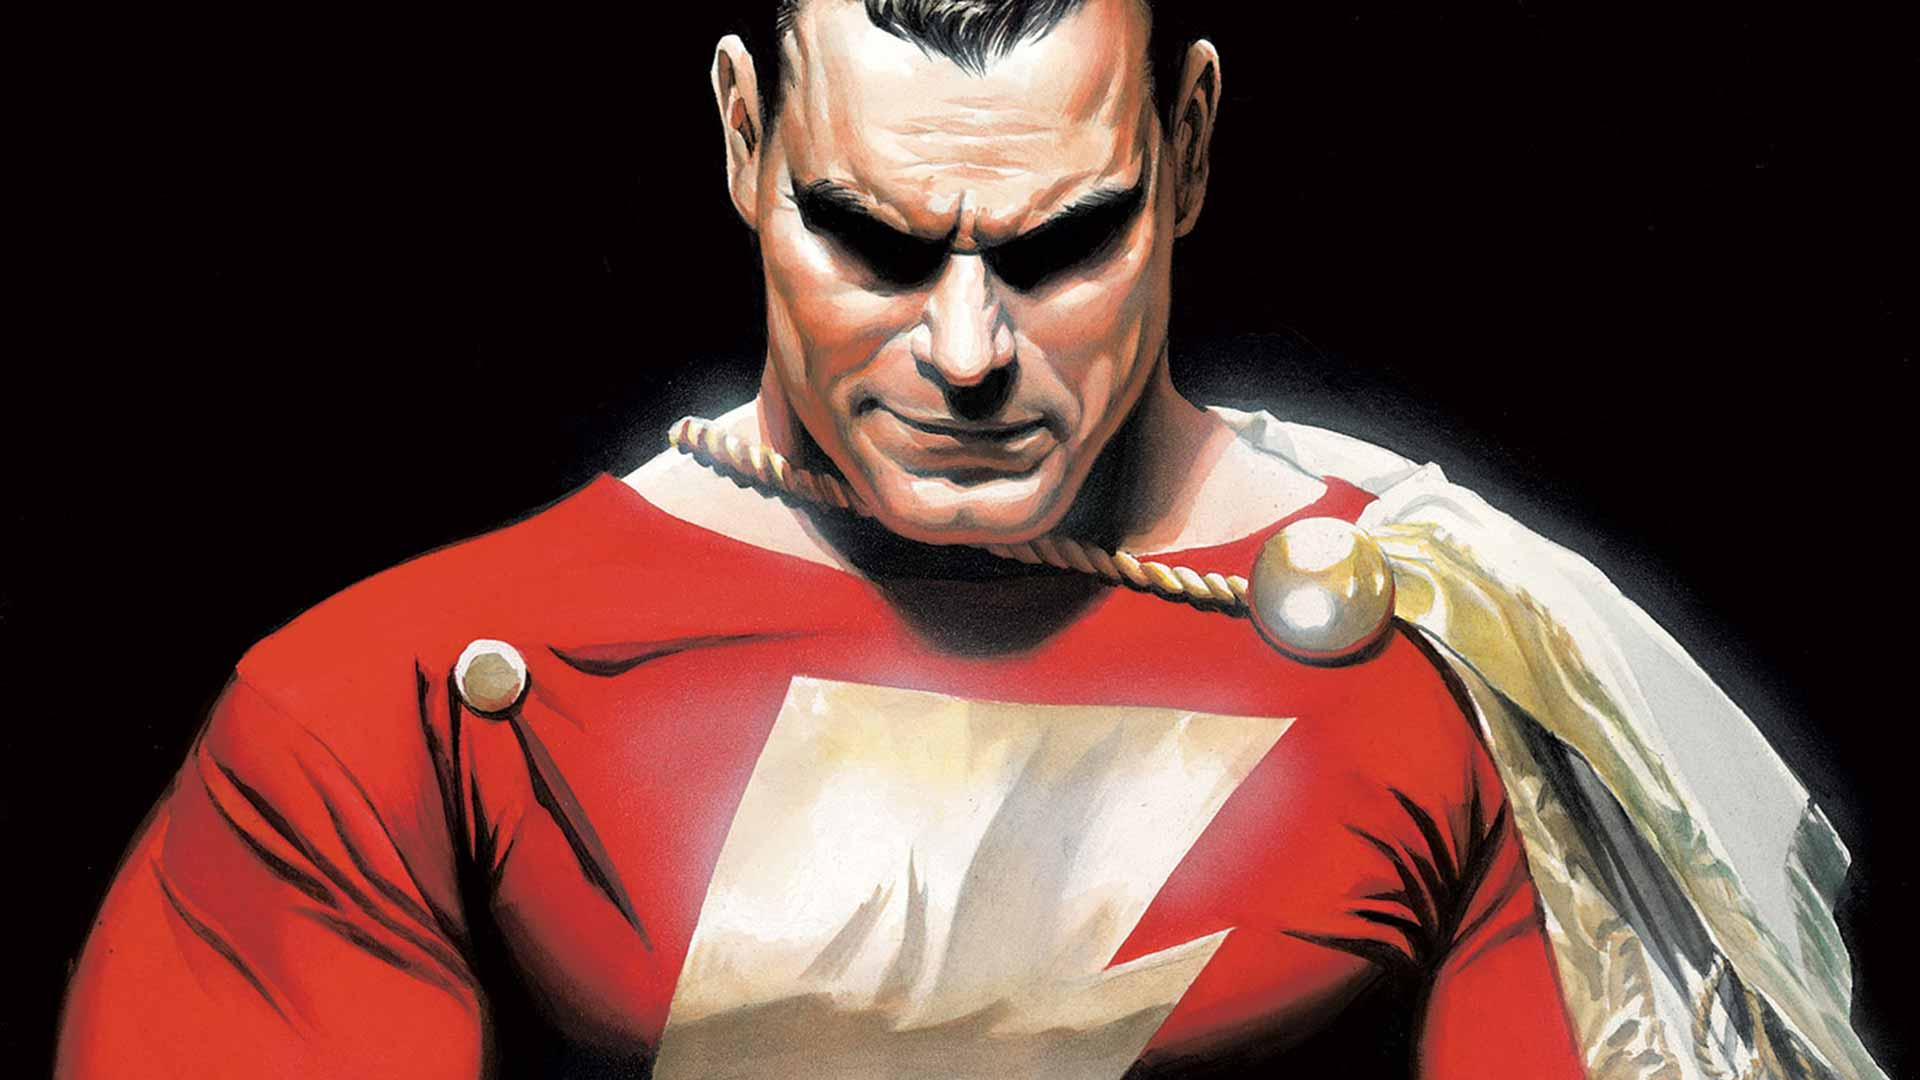 Why does Shazam have a short cape?!?